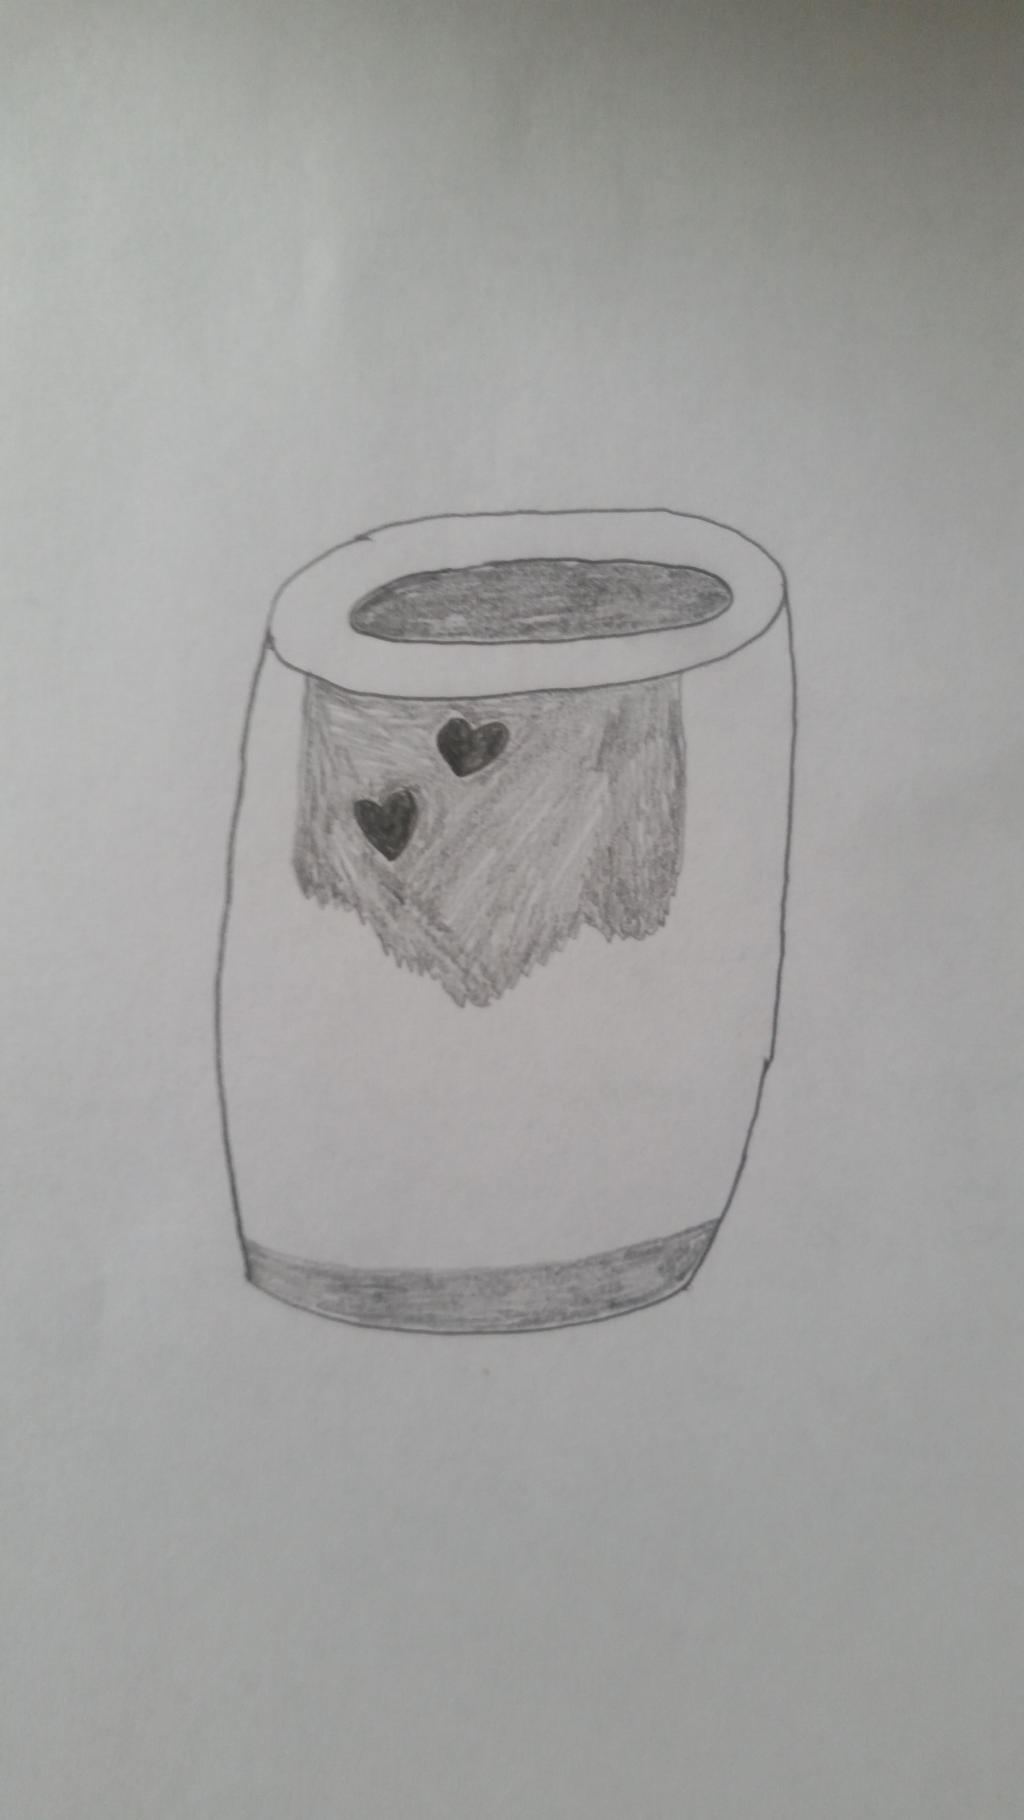 Drawing of design112's Flower Vase by PIZZAPIE97